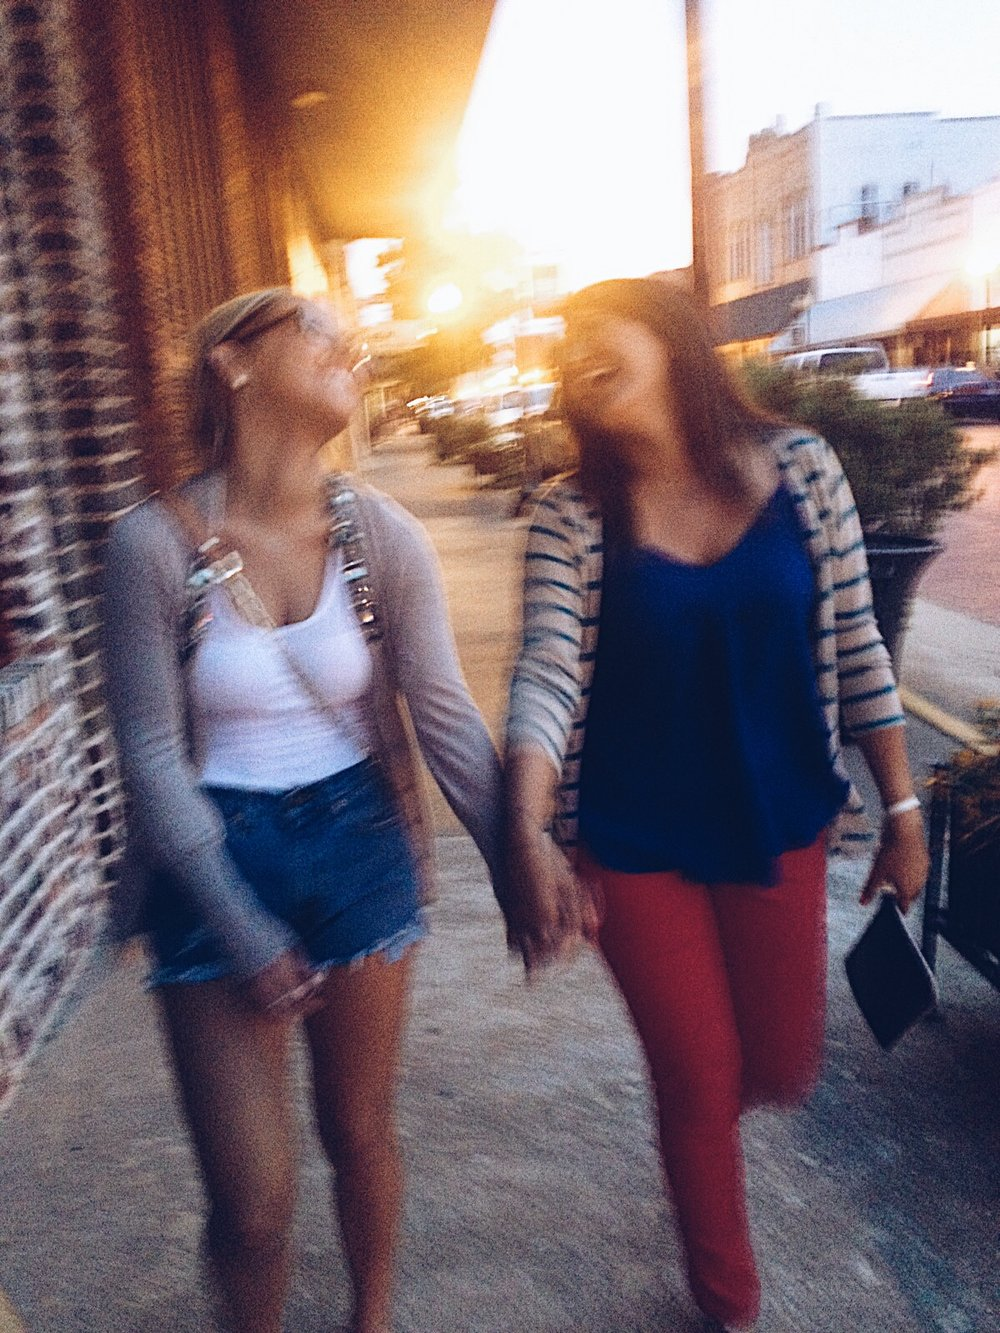 2012 - Blurry picture, priceless memory. Summer nights strolling through downtown Nacogdoches. This night, in particular, we were on our way to watch the fireworks on the Fourth of July.